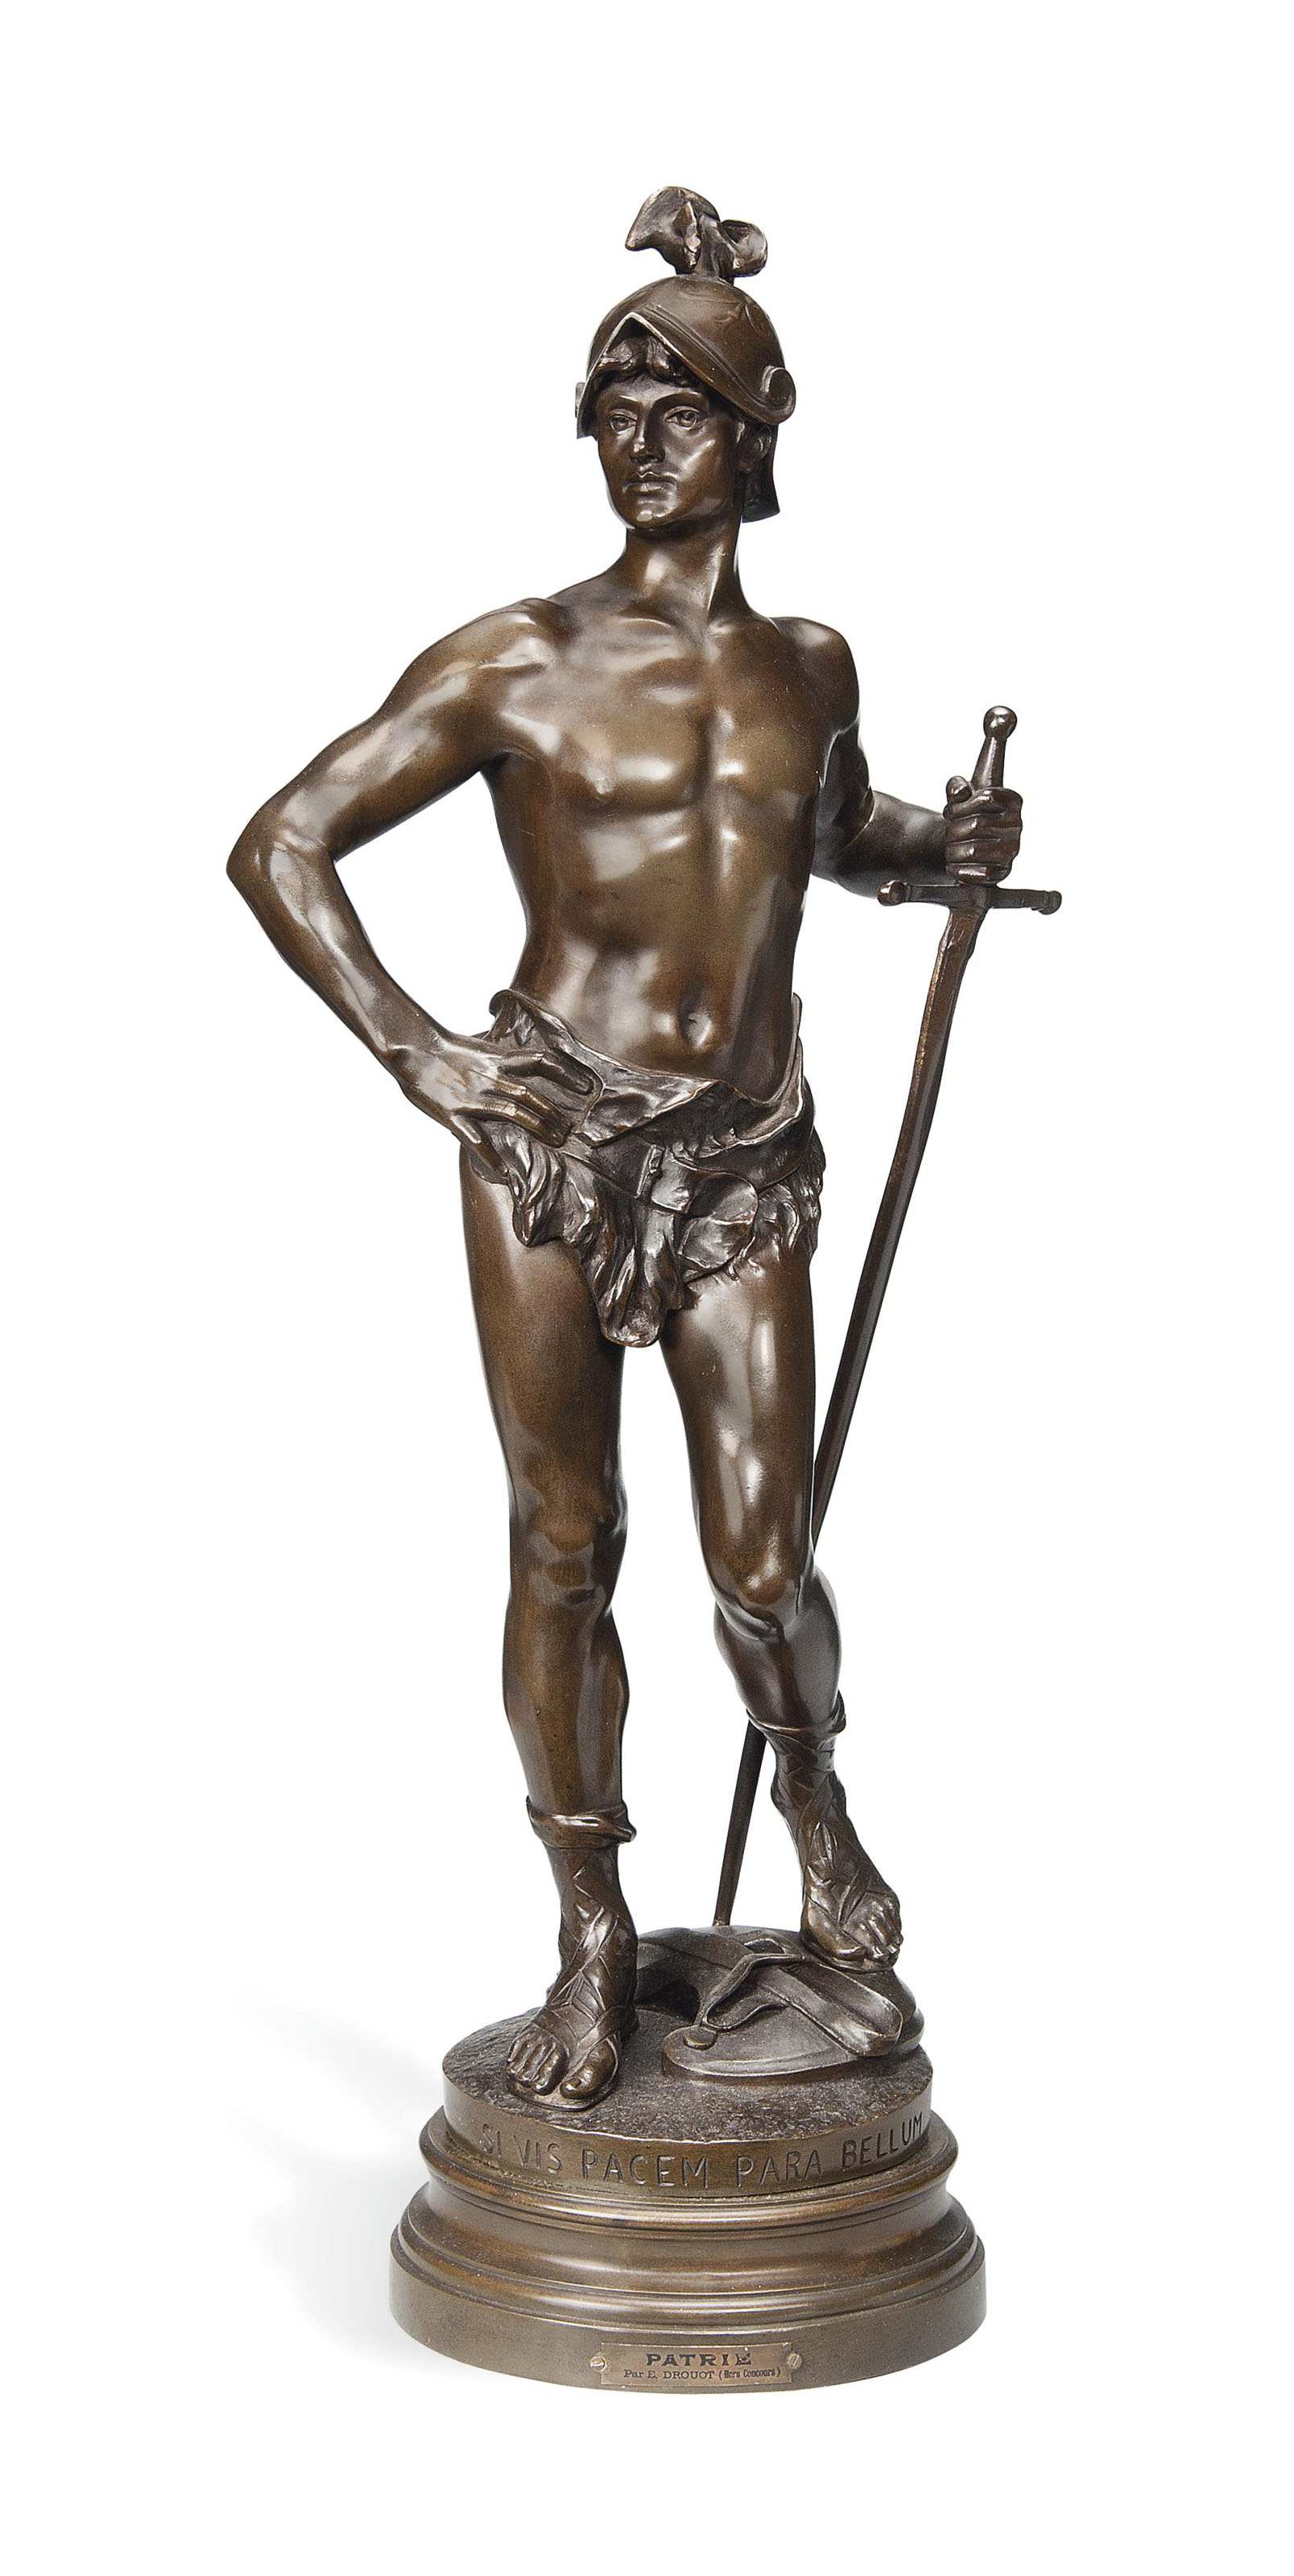 A FRENCH BRONZE FIGURE OF A CLASSICAL GLADIATOR